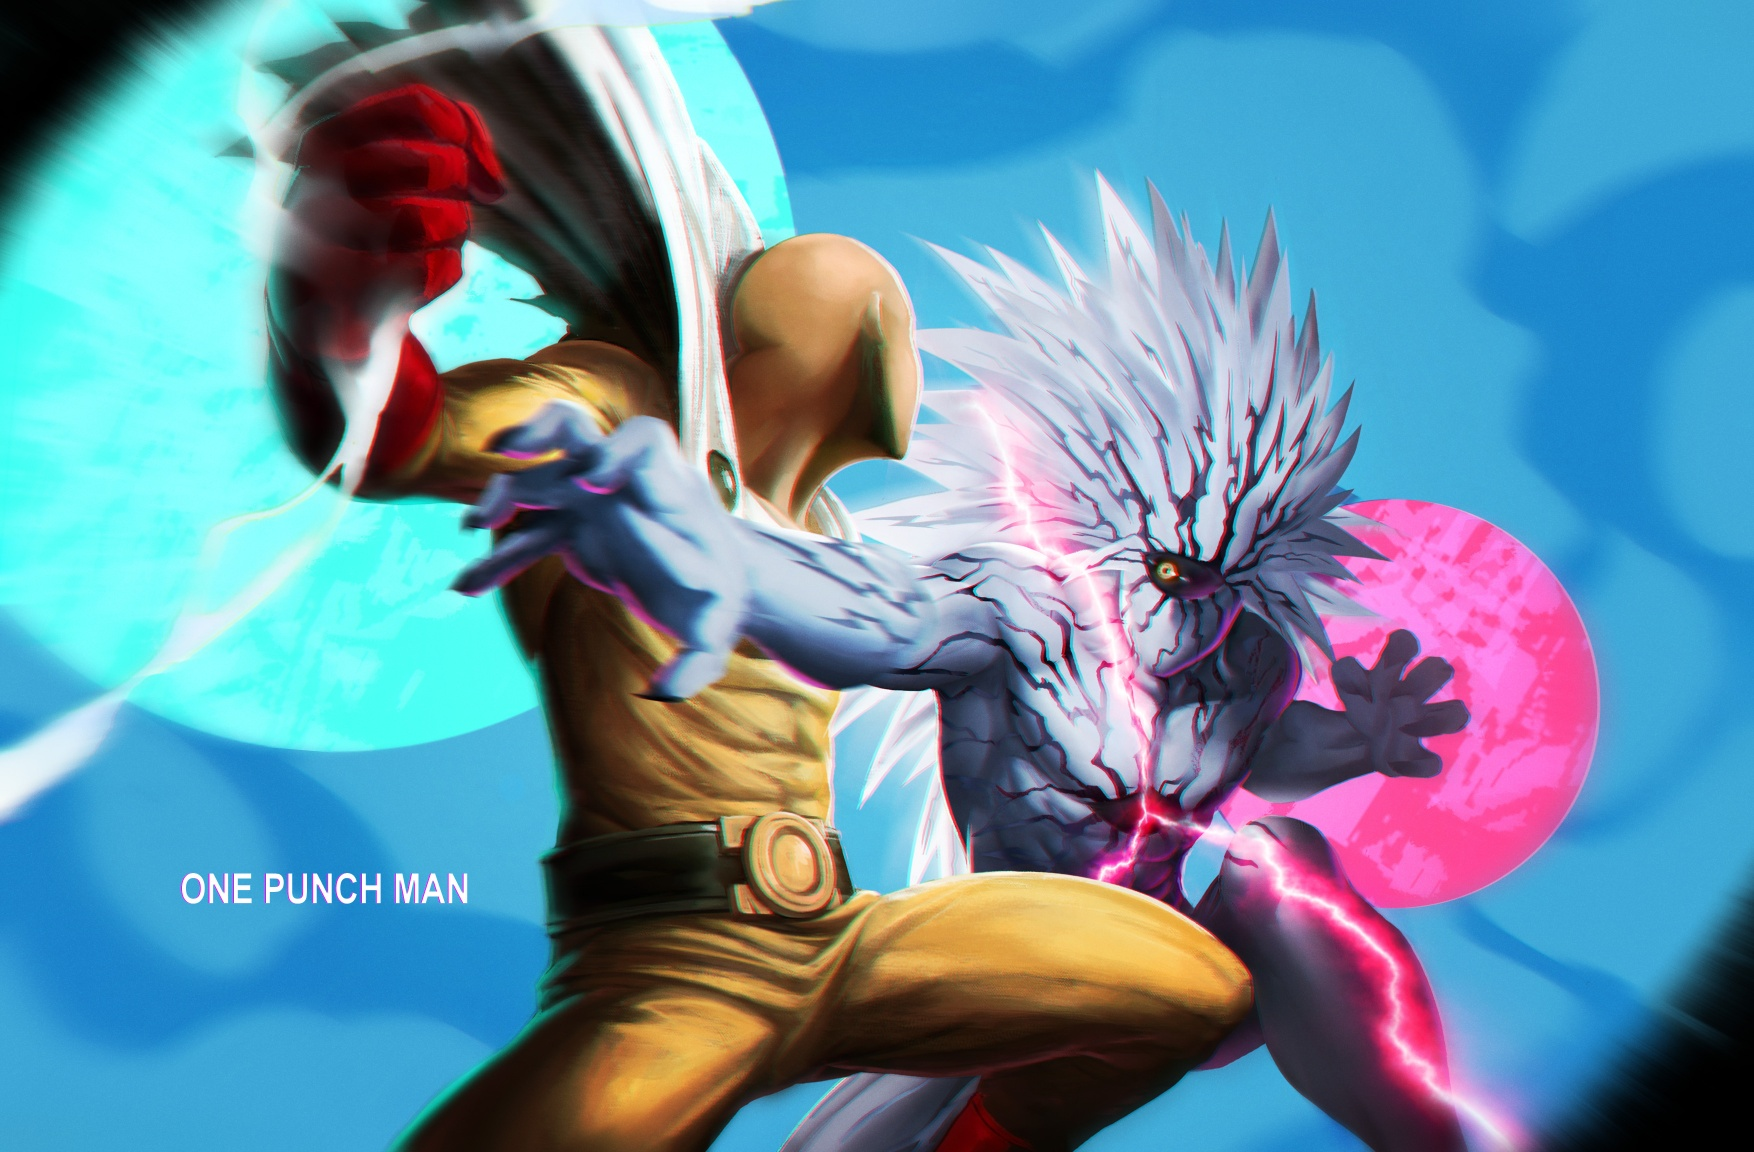 One punch man download